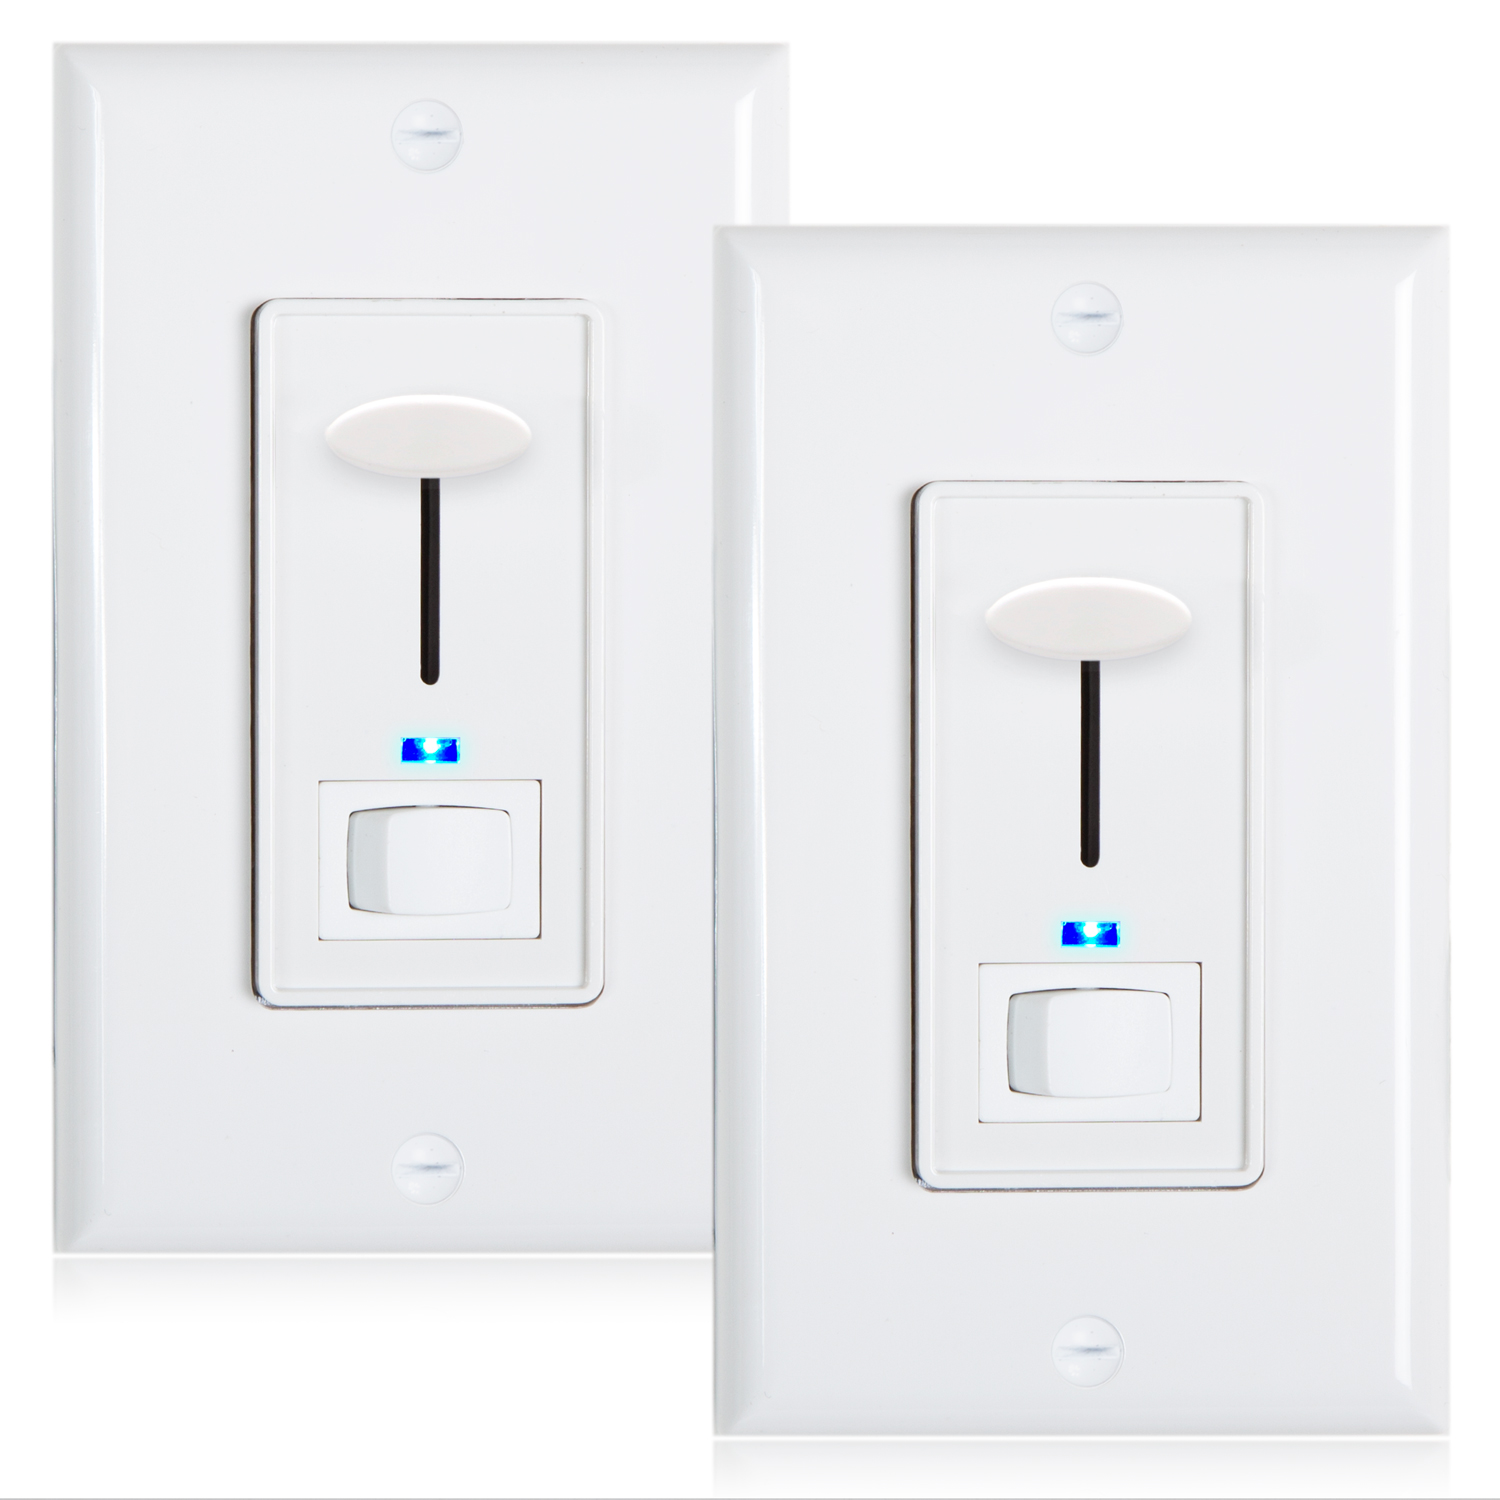 LED Compatible Wall Plate Included MEW-DM620 Maxxima 3-Way//Single Pole Dimmer Electrical Light Switch with Blue Indicator Light 600 Watt max